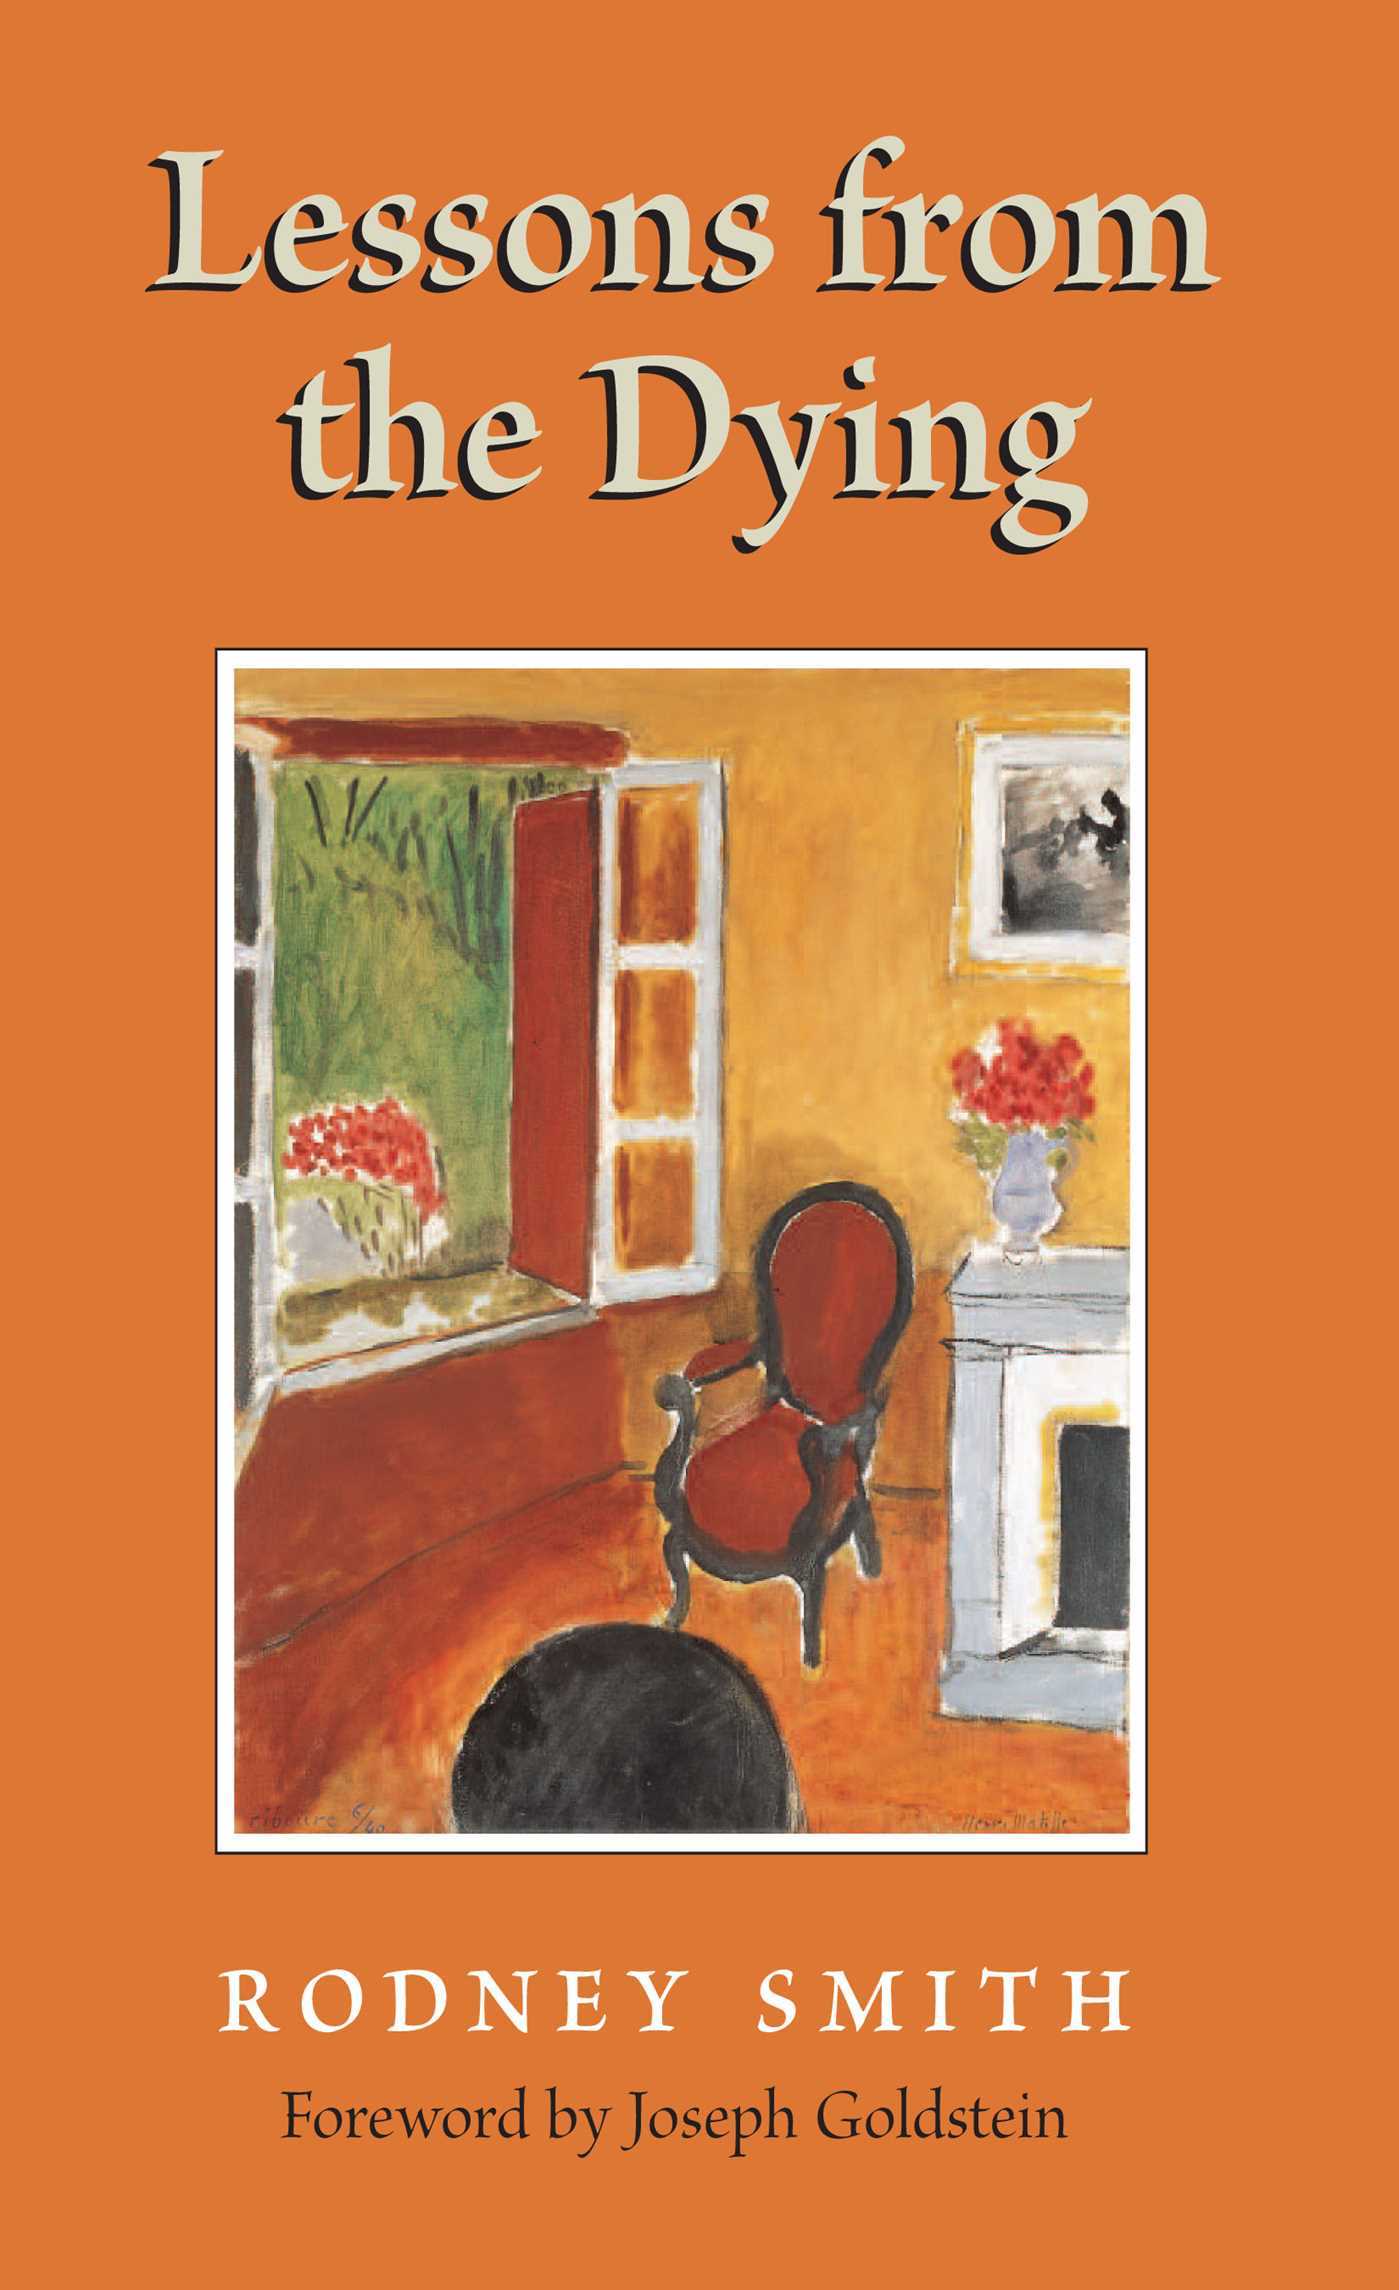 Lessons from the dying 9780861718917 hr